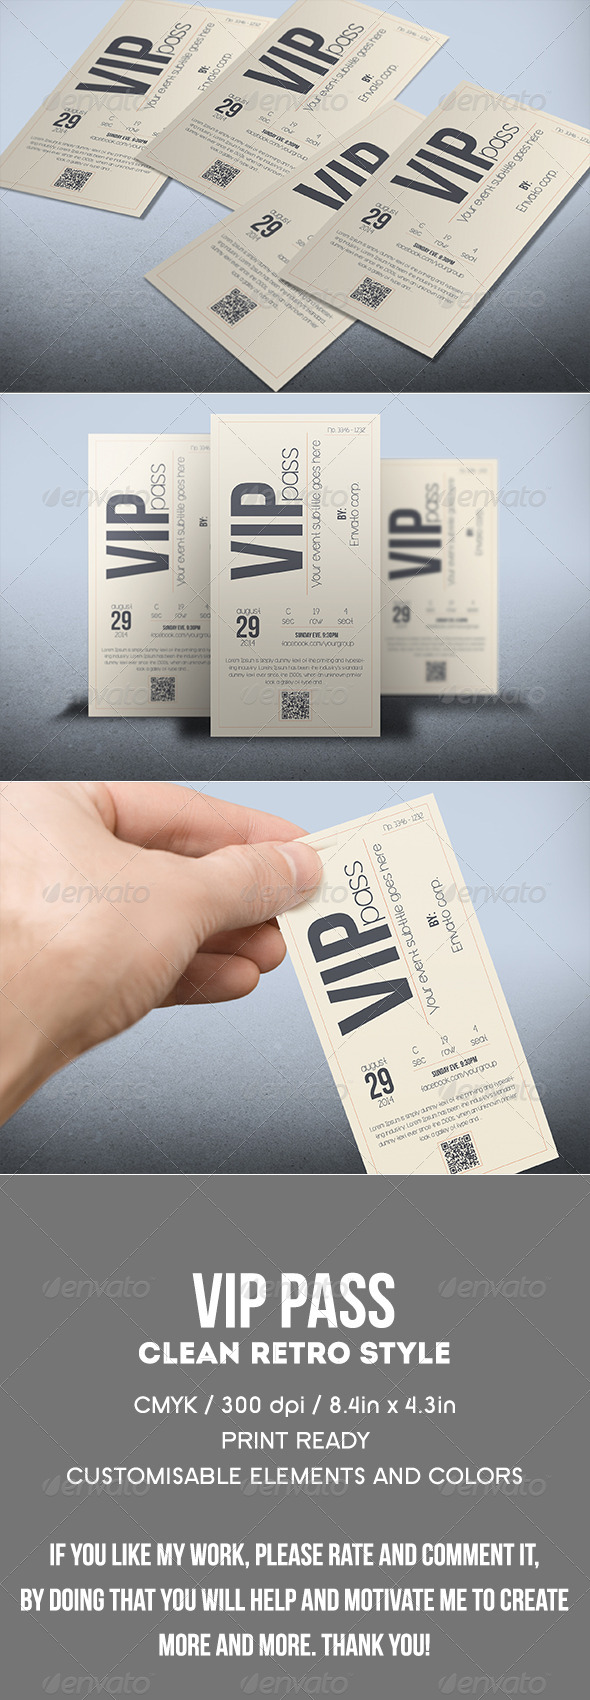 Vip Pass Graphics, Designs & Templates from GraphicRiver